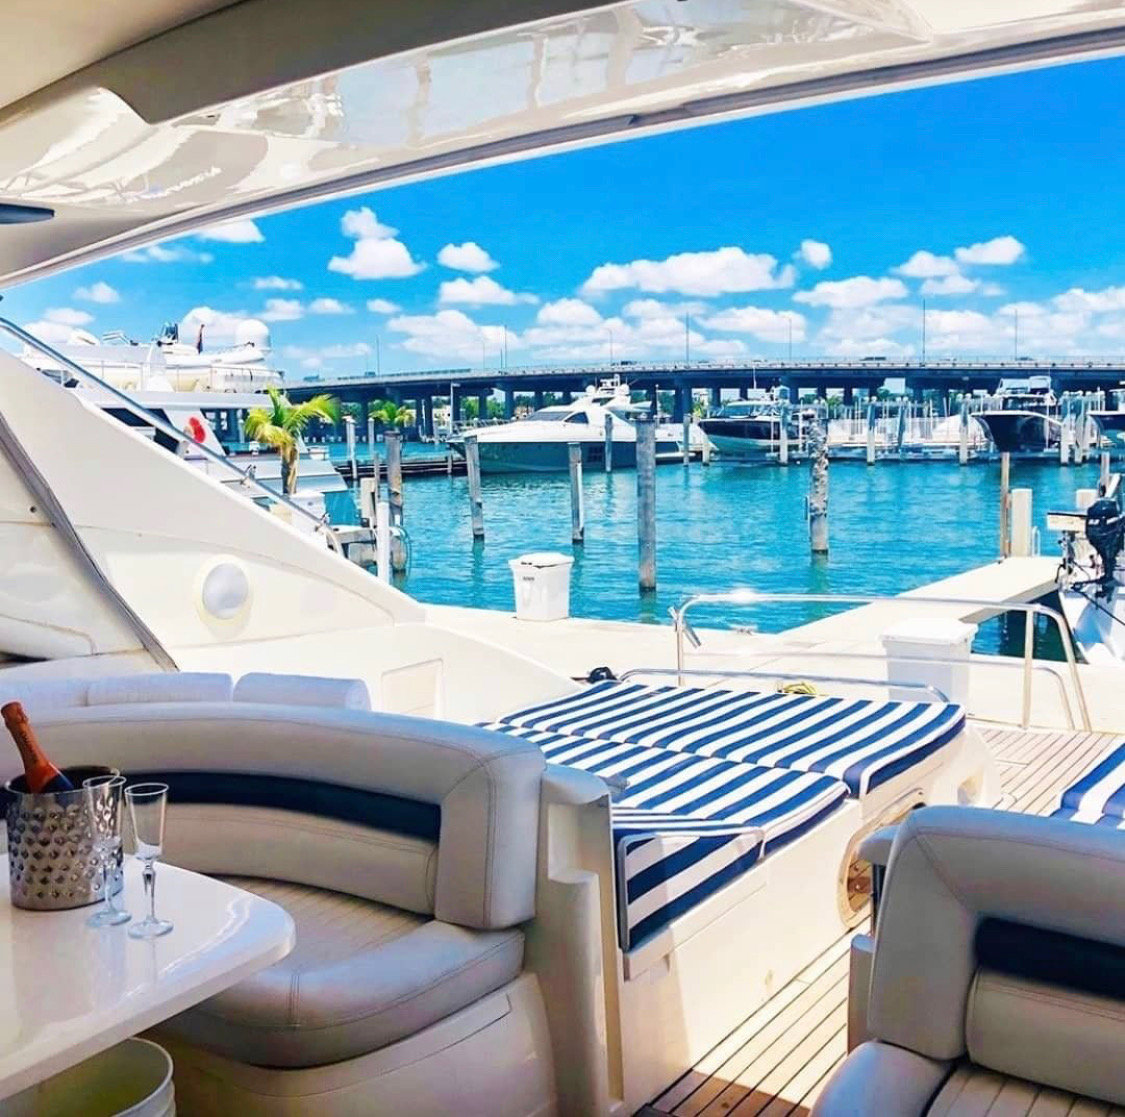 36 ft Yacht Tour (2-Hours)